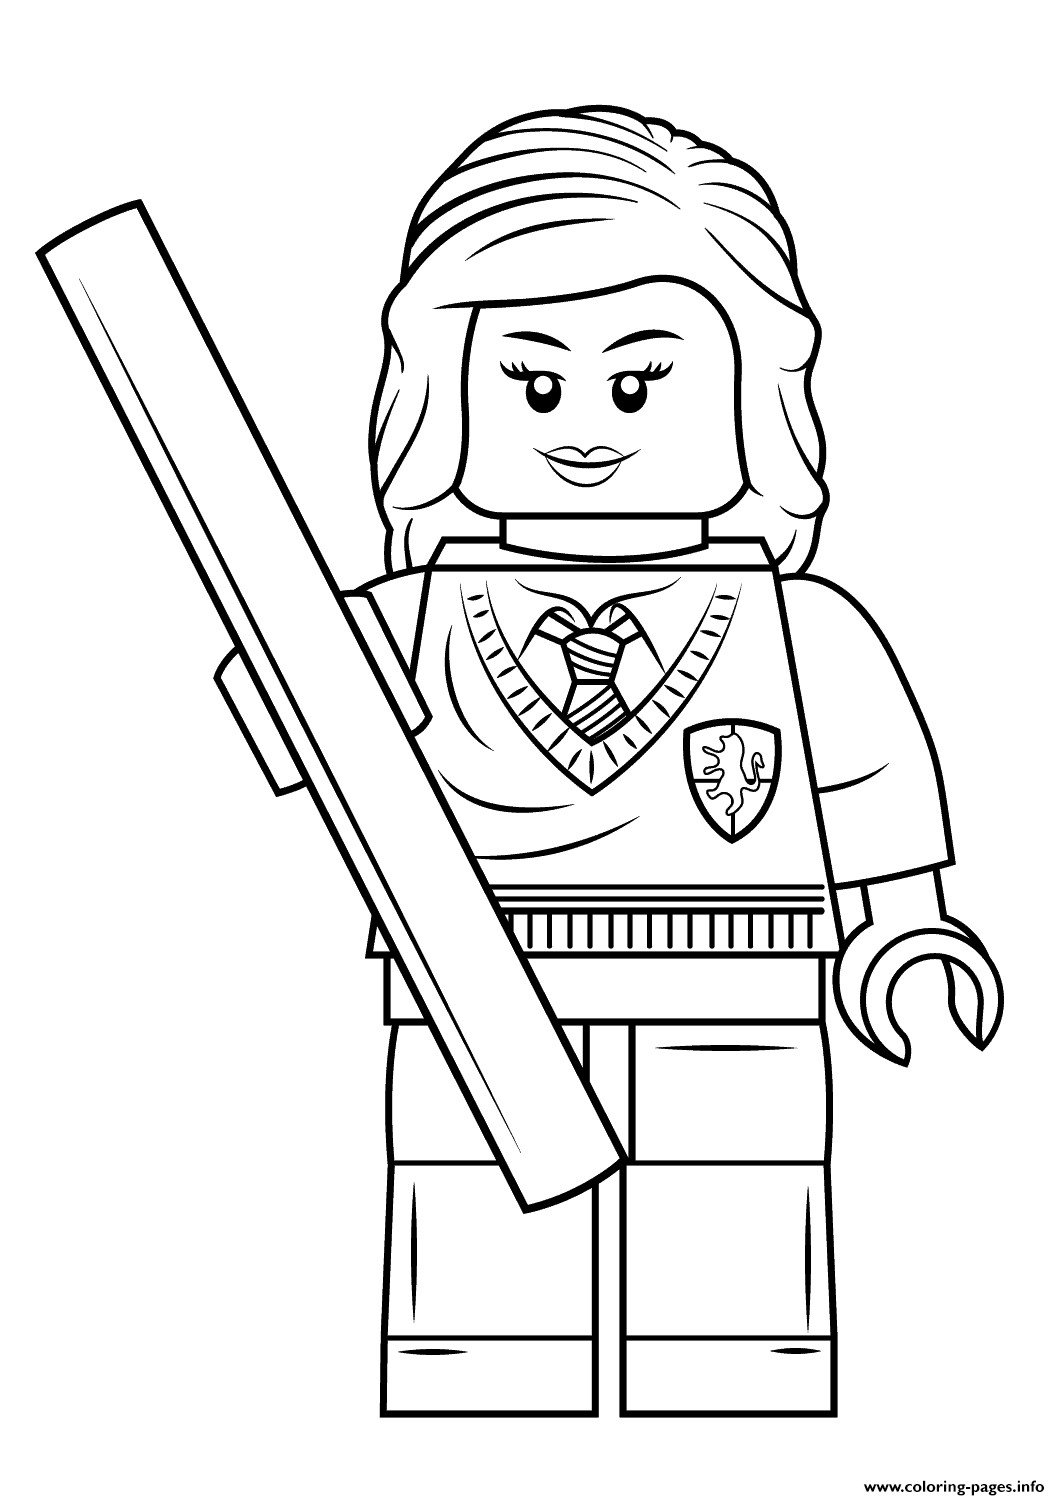 1060x1500 Harry Potter Coloring Pages Harry Mosm